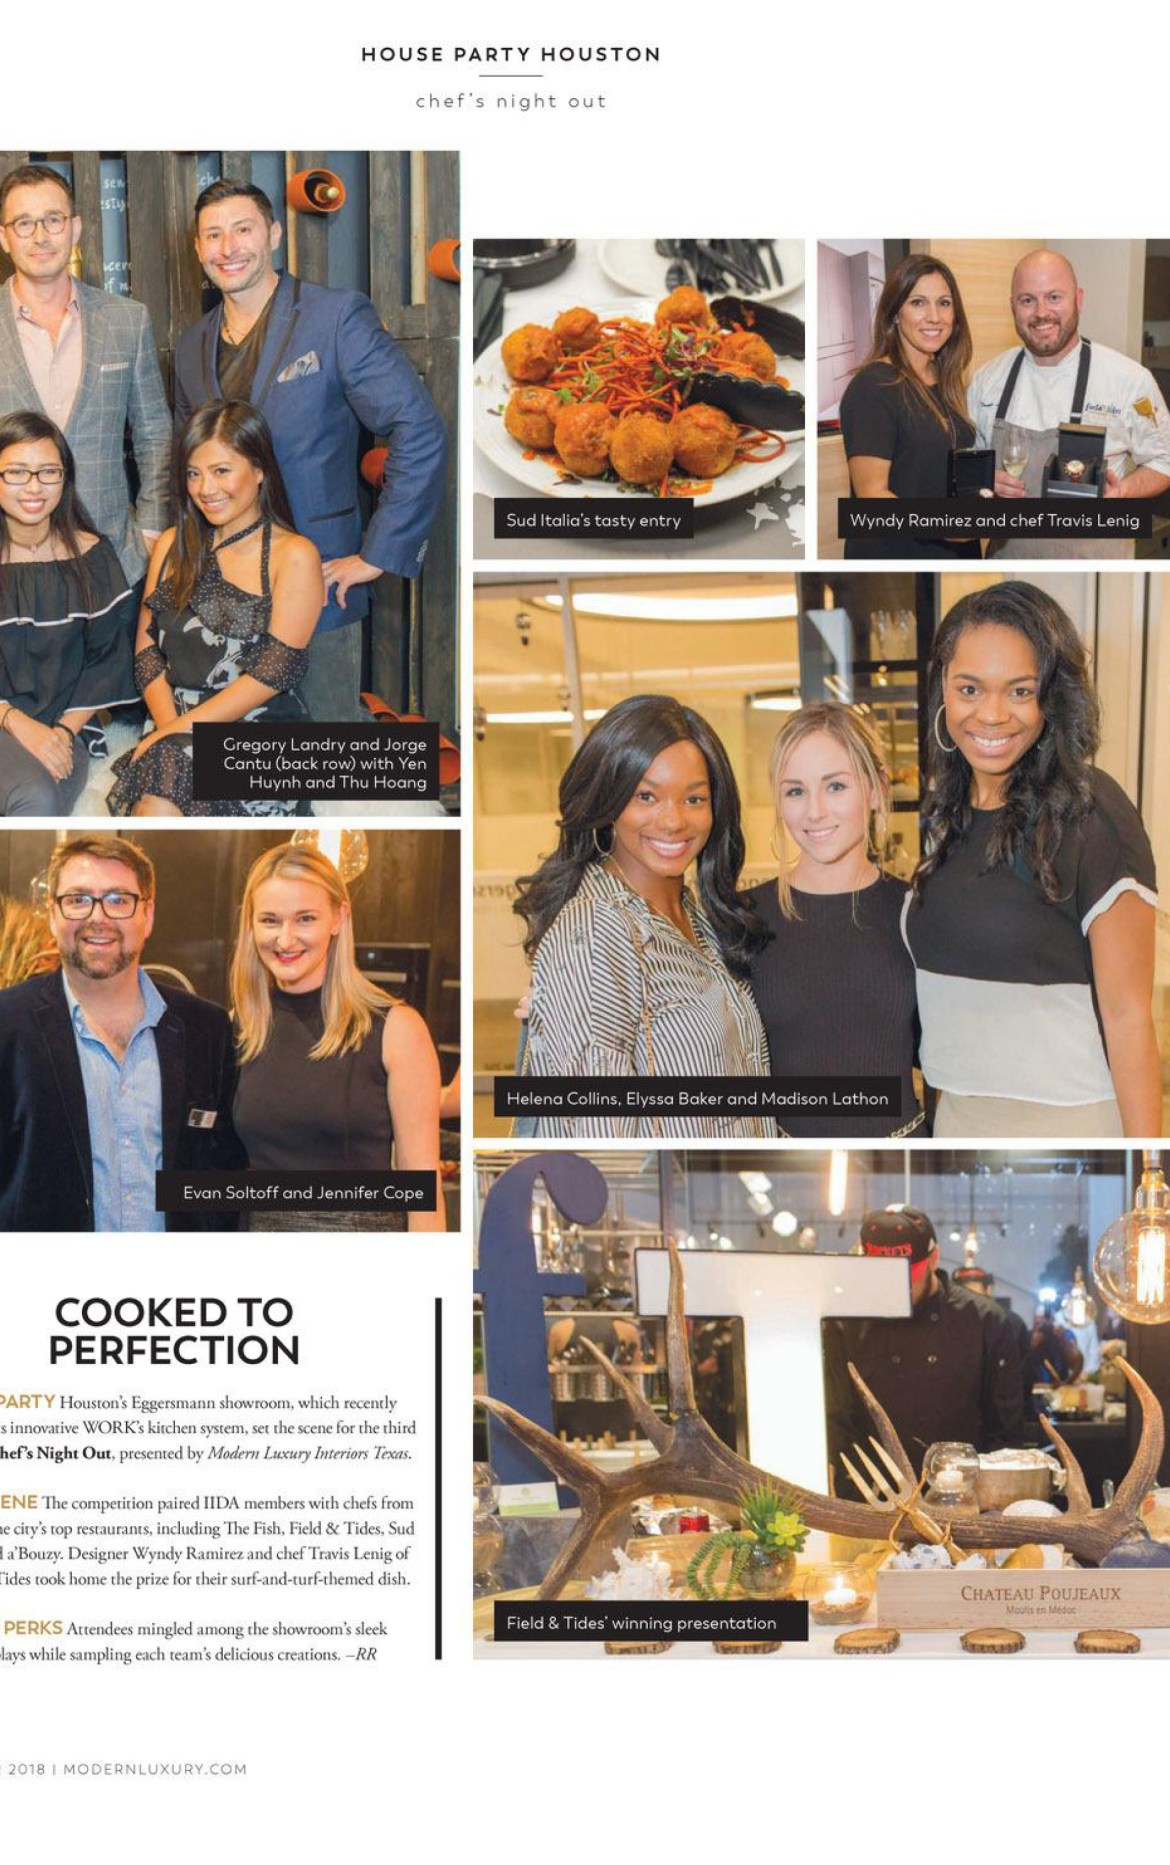 eggersmann's cabinet system called the works was featured during a chef's night out event sponsored by modern luxury interiors texas